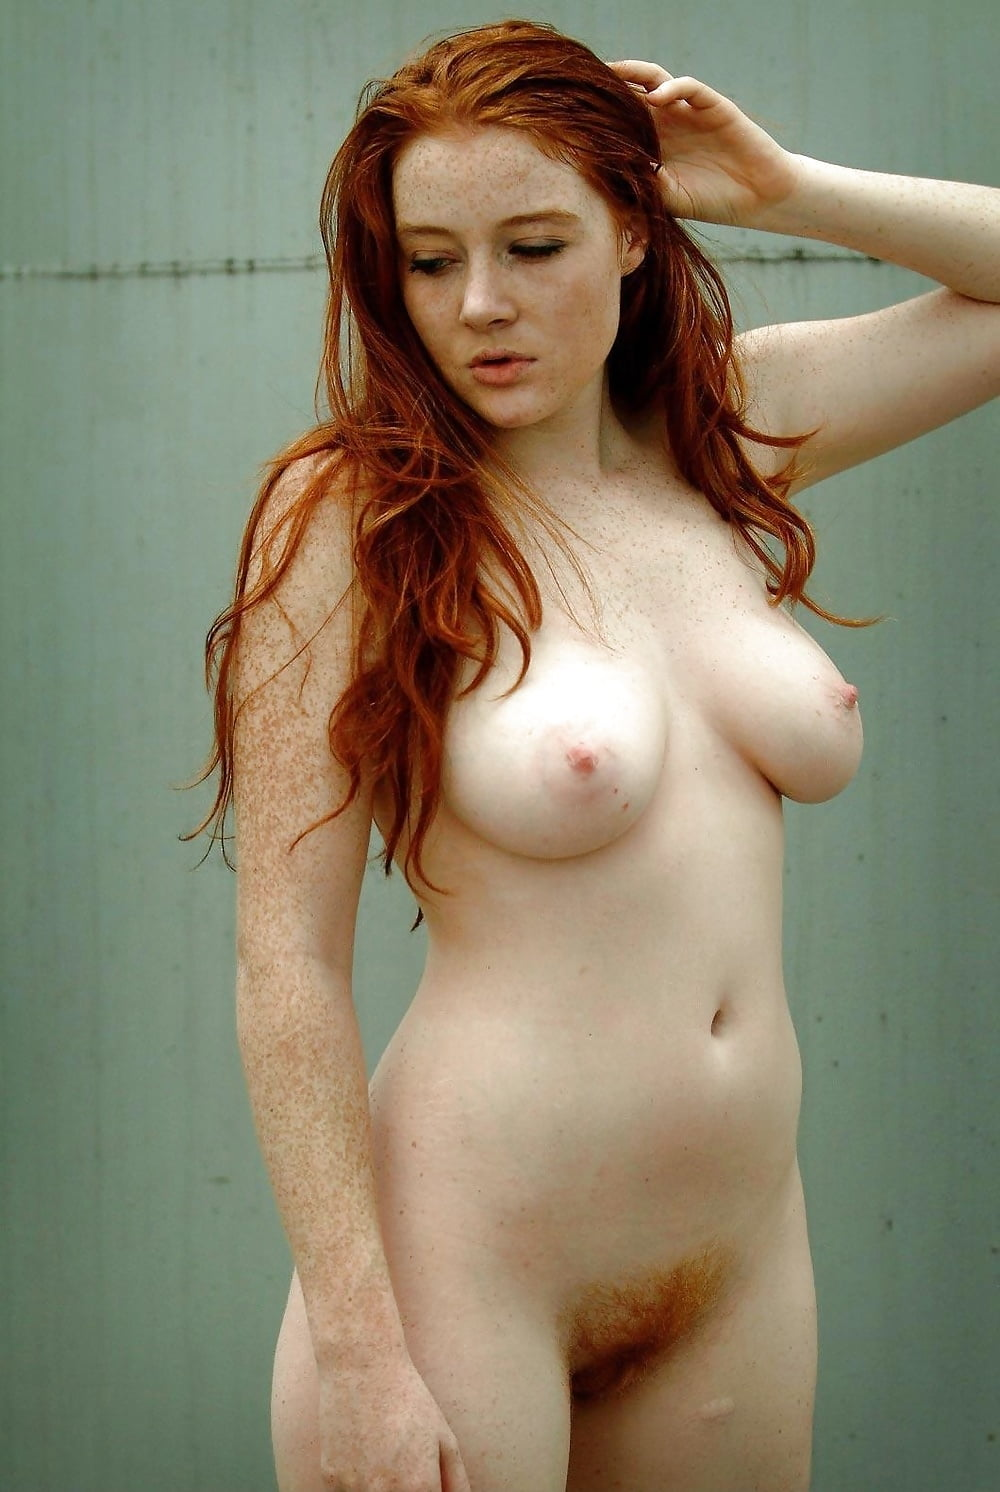 redhead-hot-naked-women